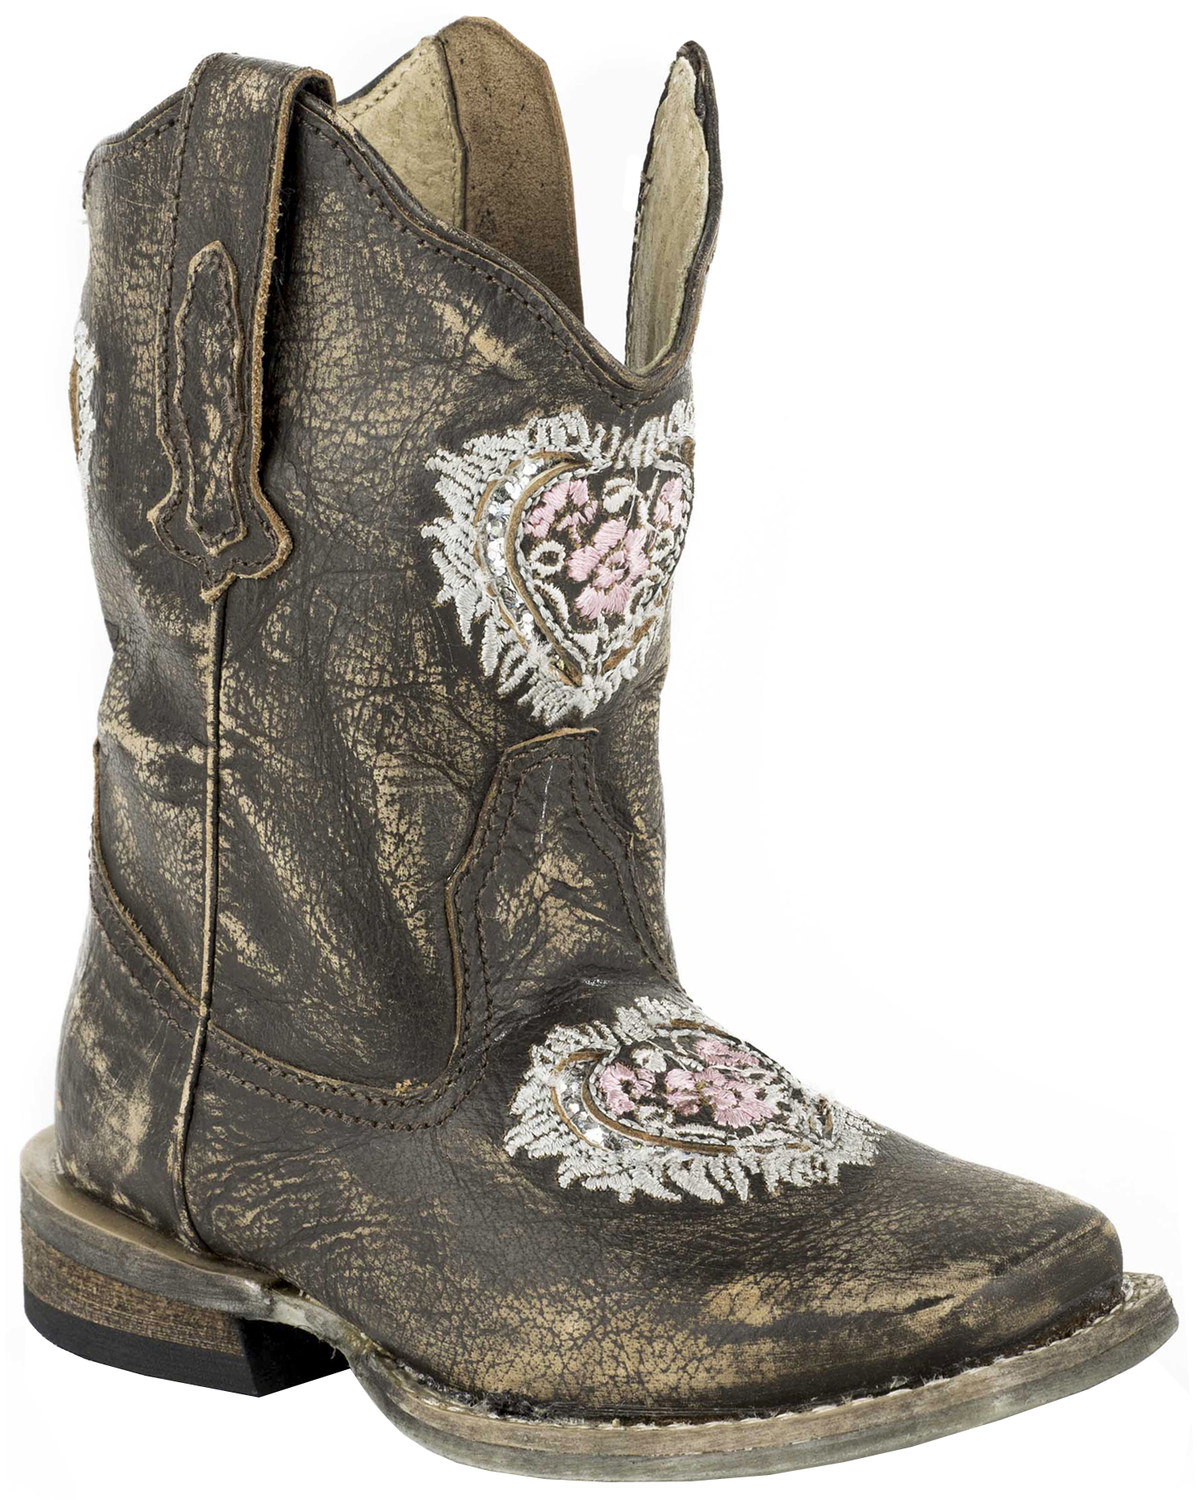 2cef46049b6 Roper Toddler Girls' Destiny Floral Heart Inside Zip Cowgirl Boots - Square  Toe